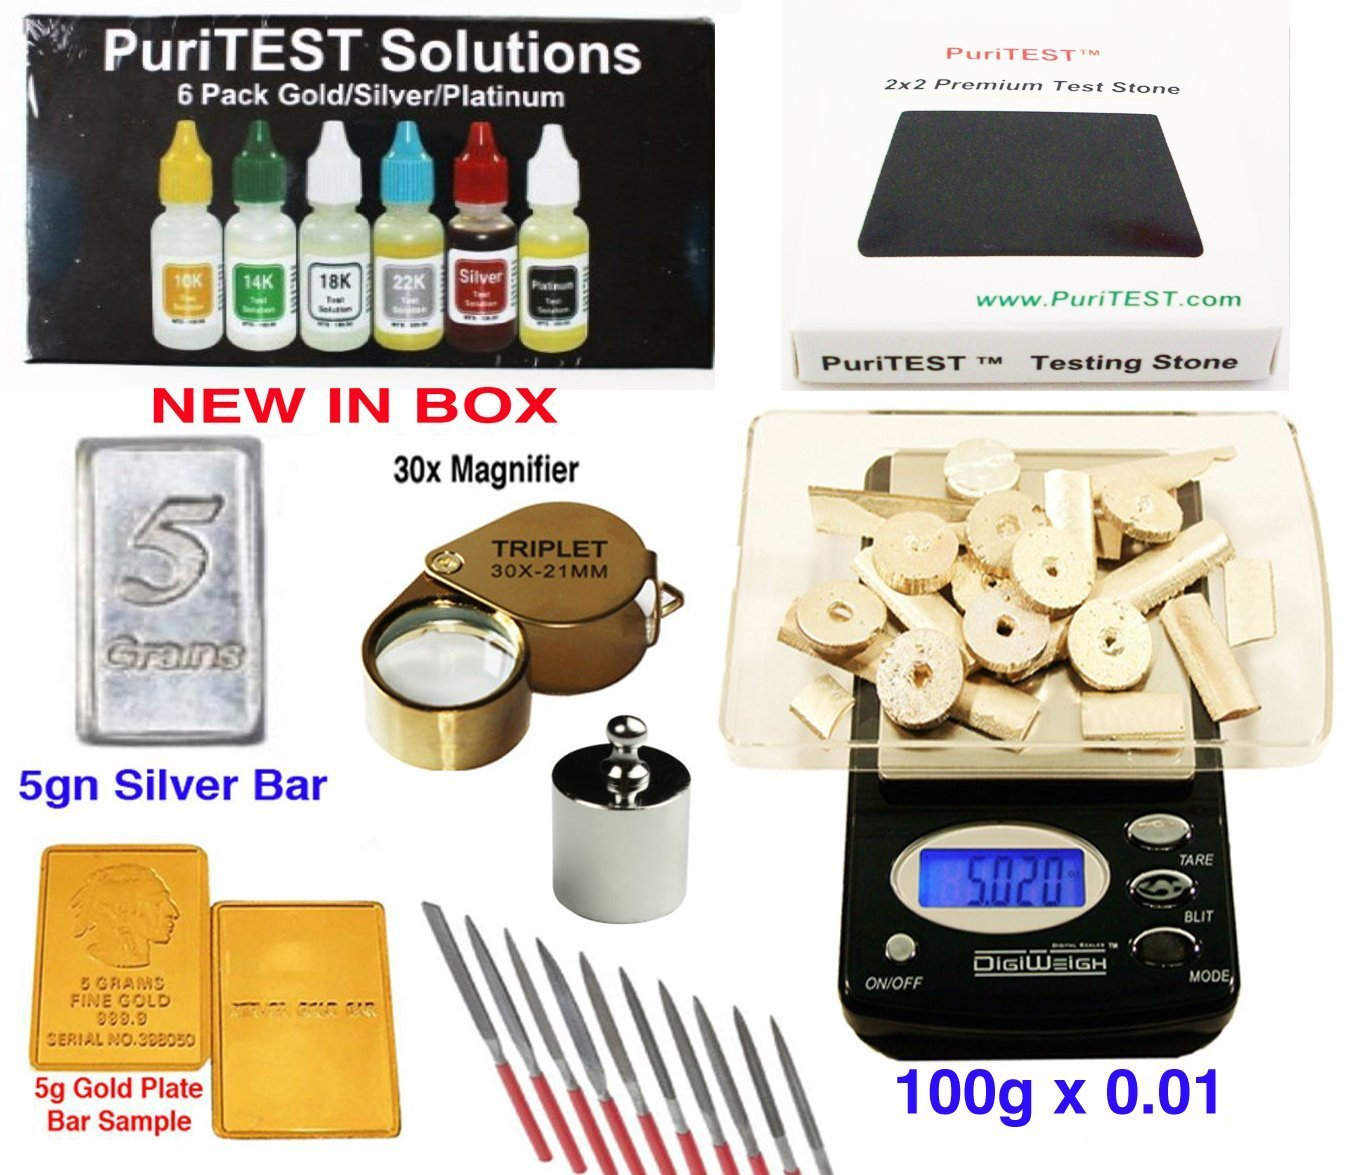 Precious Metal Testing Supplies Digital Scale + Gold/Silver/Platinum Testing Kit + PRO Test Stone + Eye Loupe + 10pcs File Tool Set + Real Solid Silver/Plated Fake Gold PuriTEST